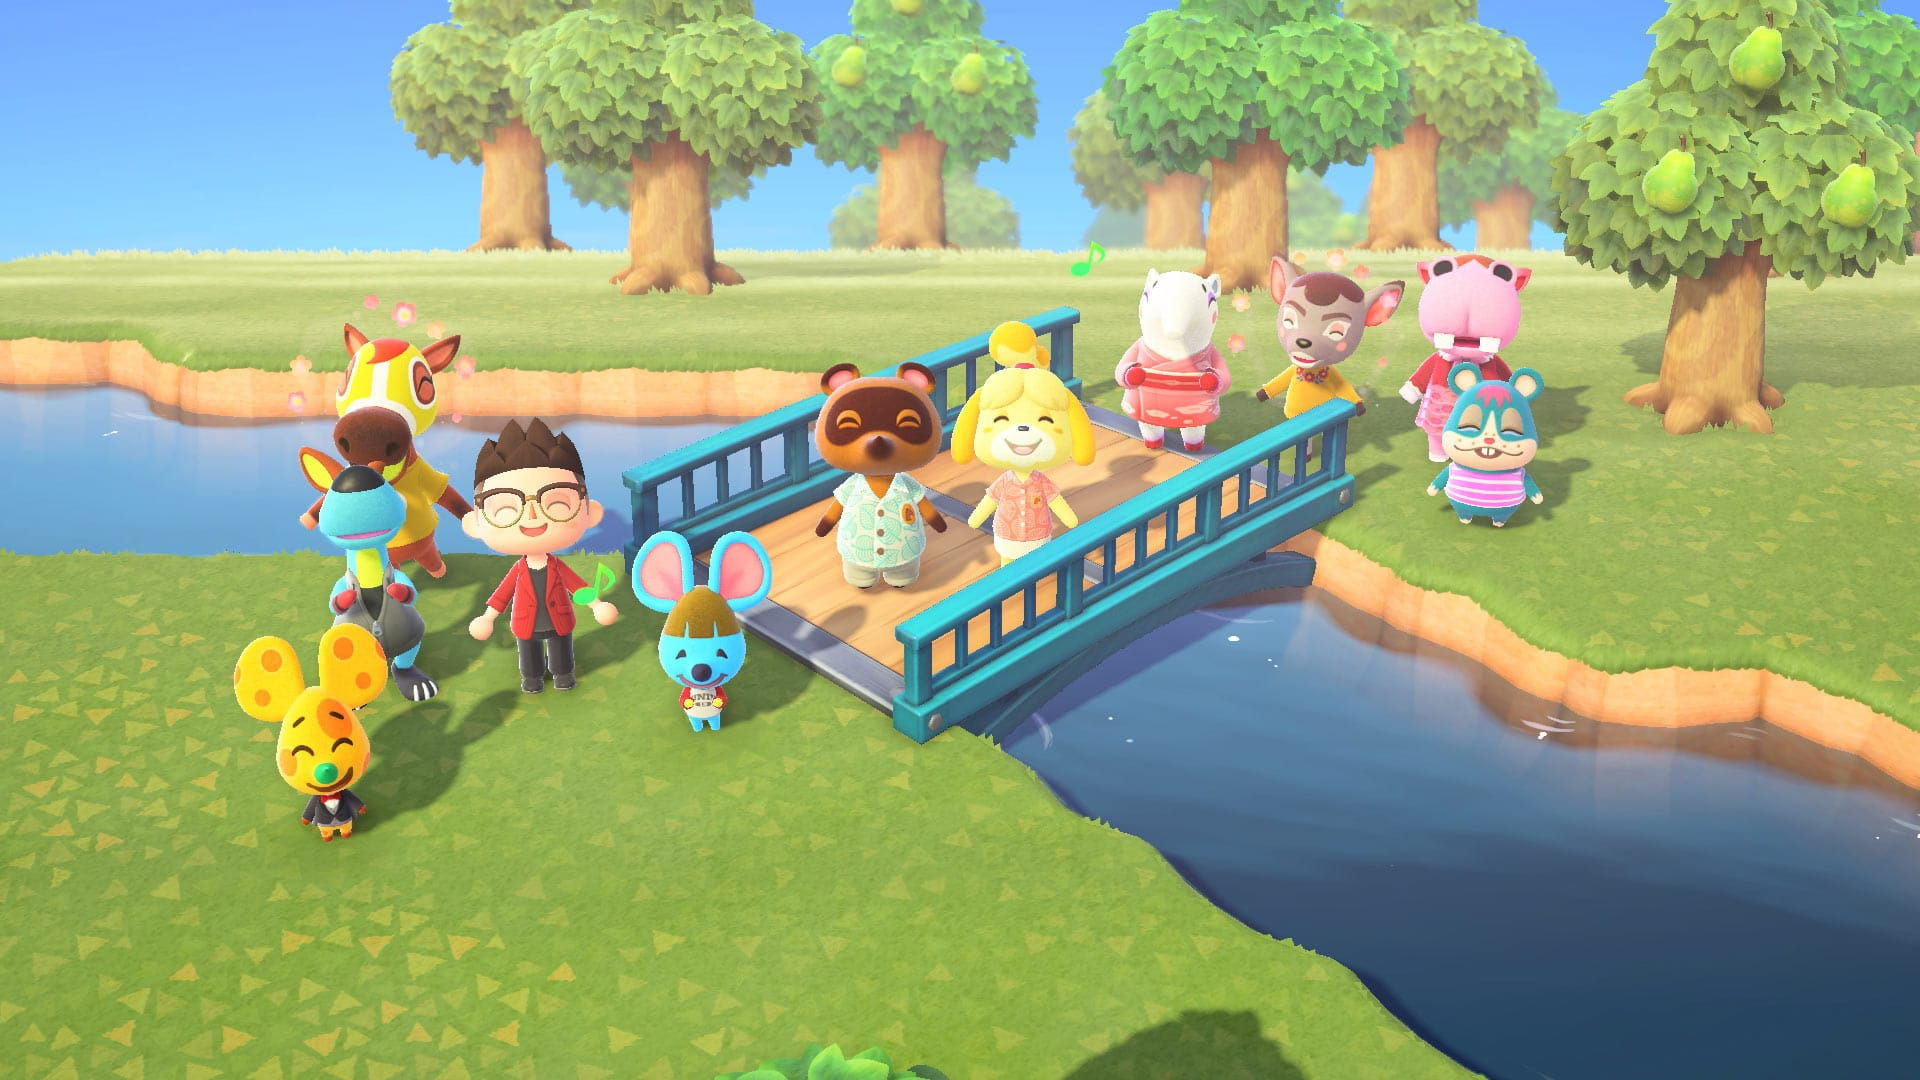 Share Your Community Animal Crossing New Horizons For Nintendo